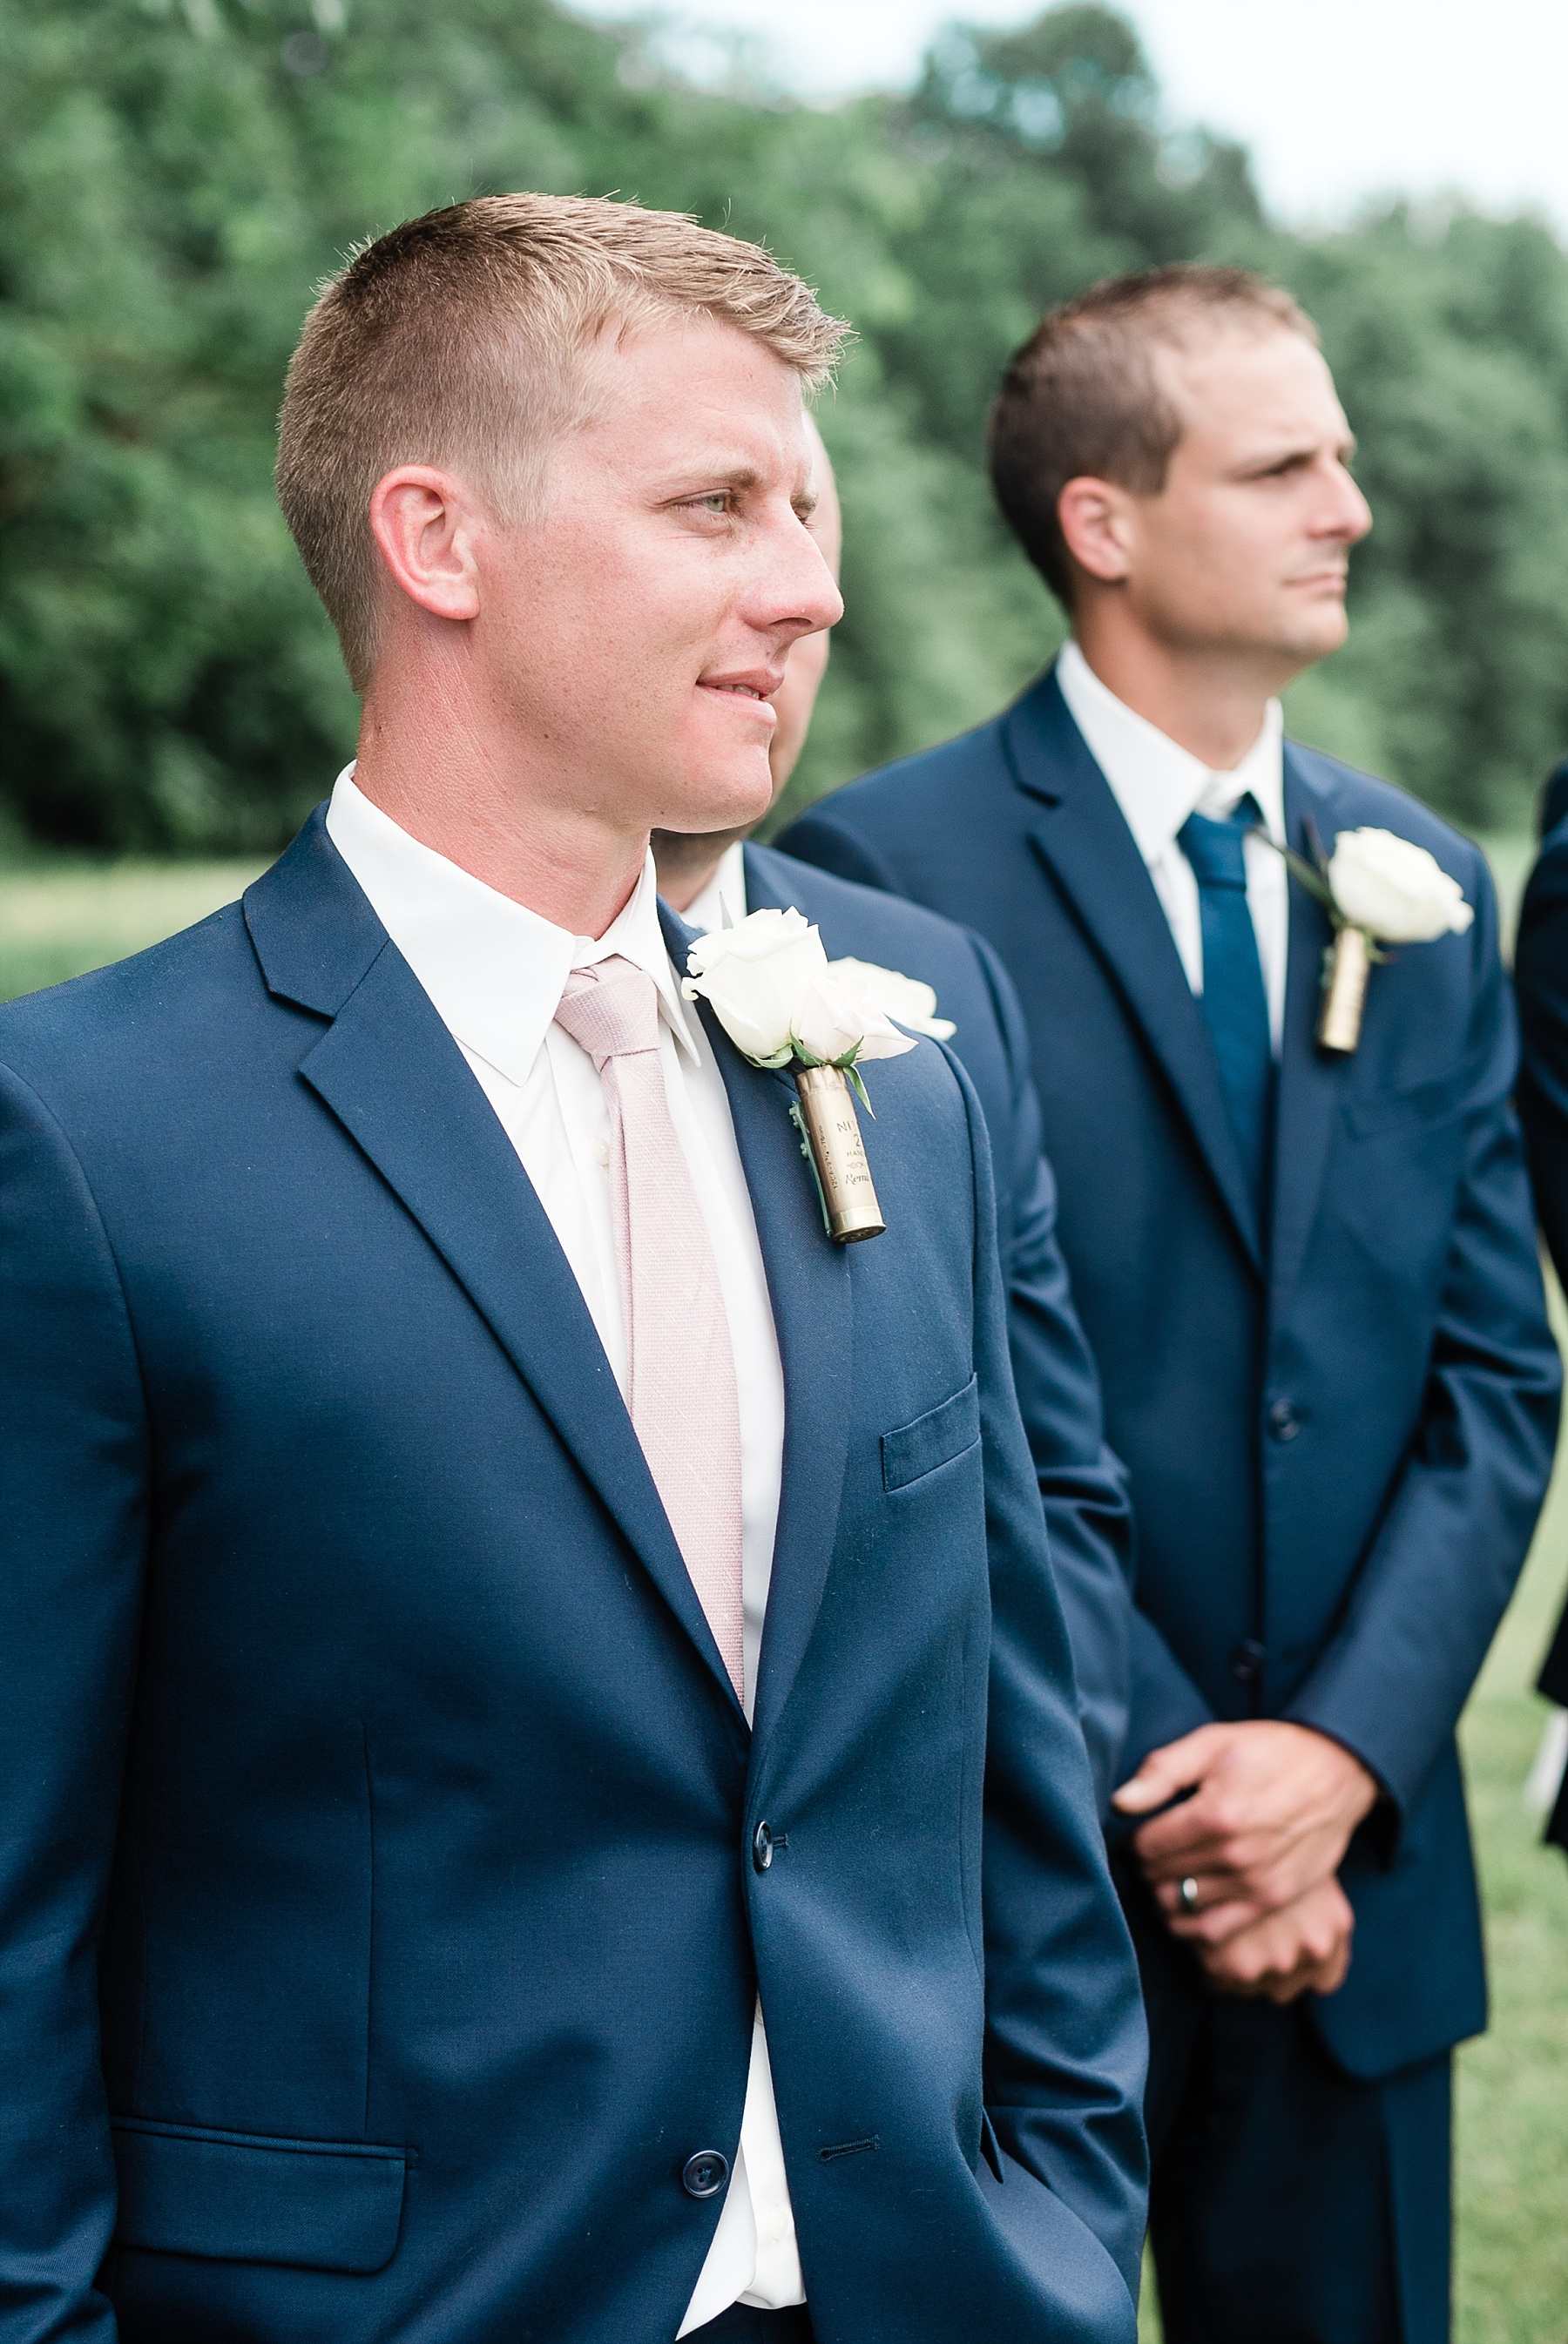 Stunning Heartfelt, Elegant, Fine Art, Chic, Outdoor Spring Wedding with Blush, Cream, Greenery, Rose Gold, and Sequins at Emerson Fields Venue by Kelsi Kliethermes Photography_0046.jpg